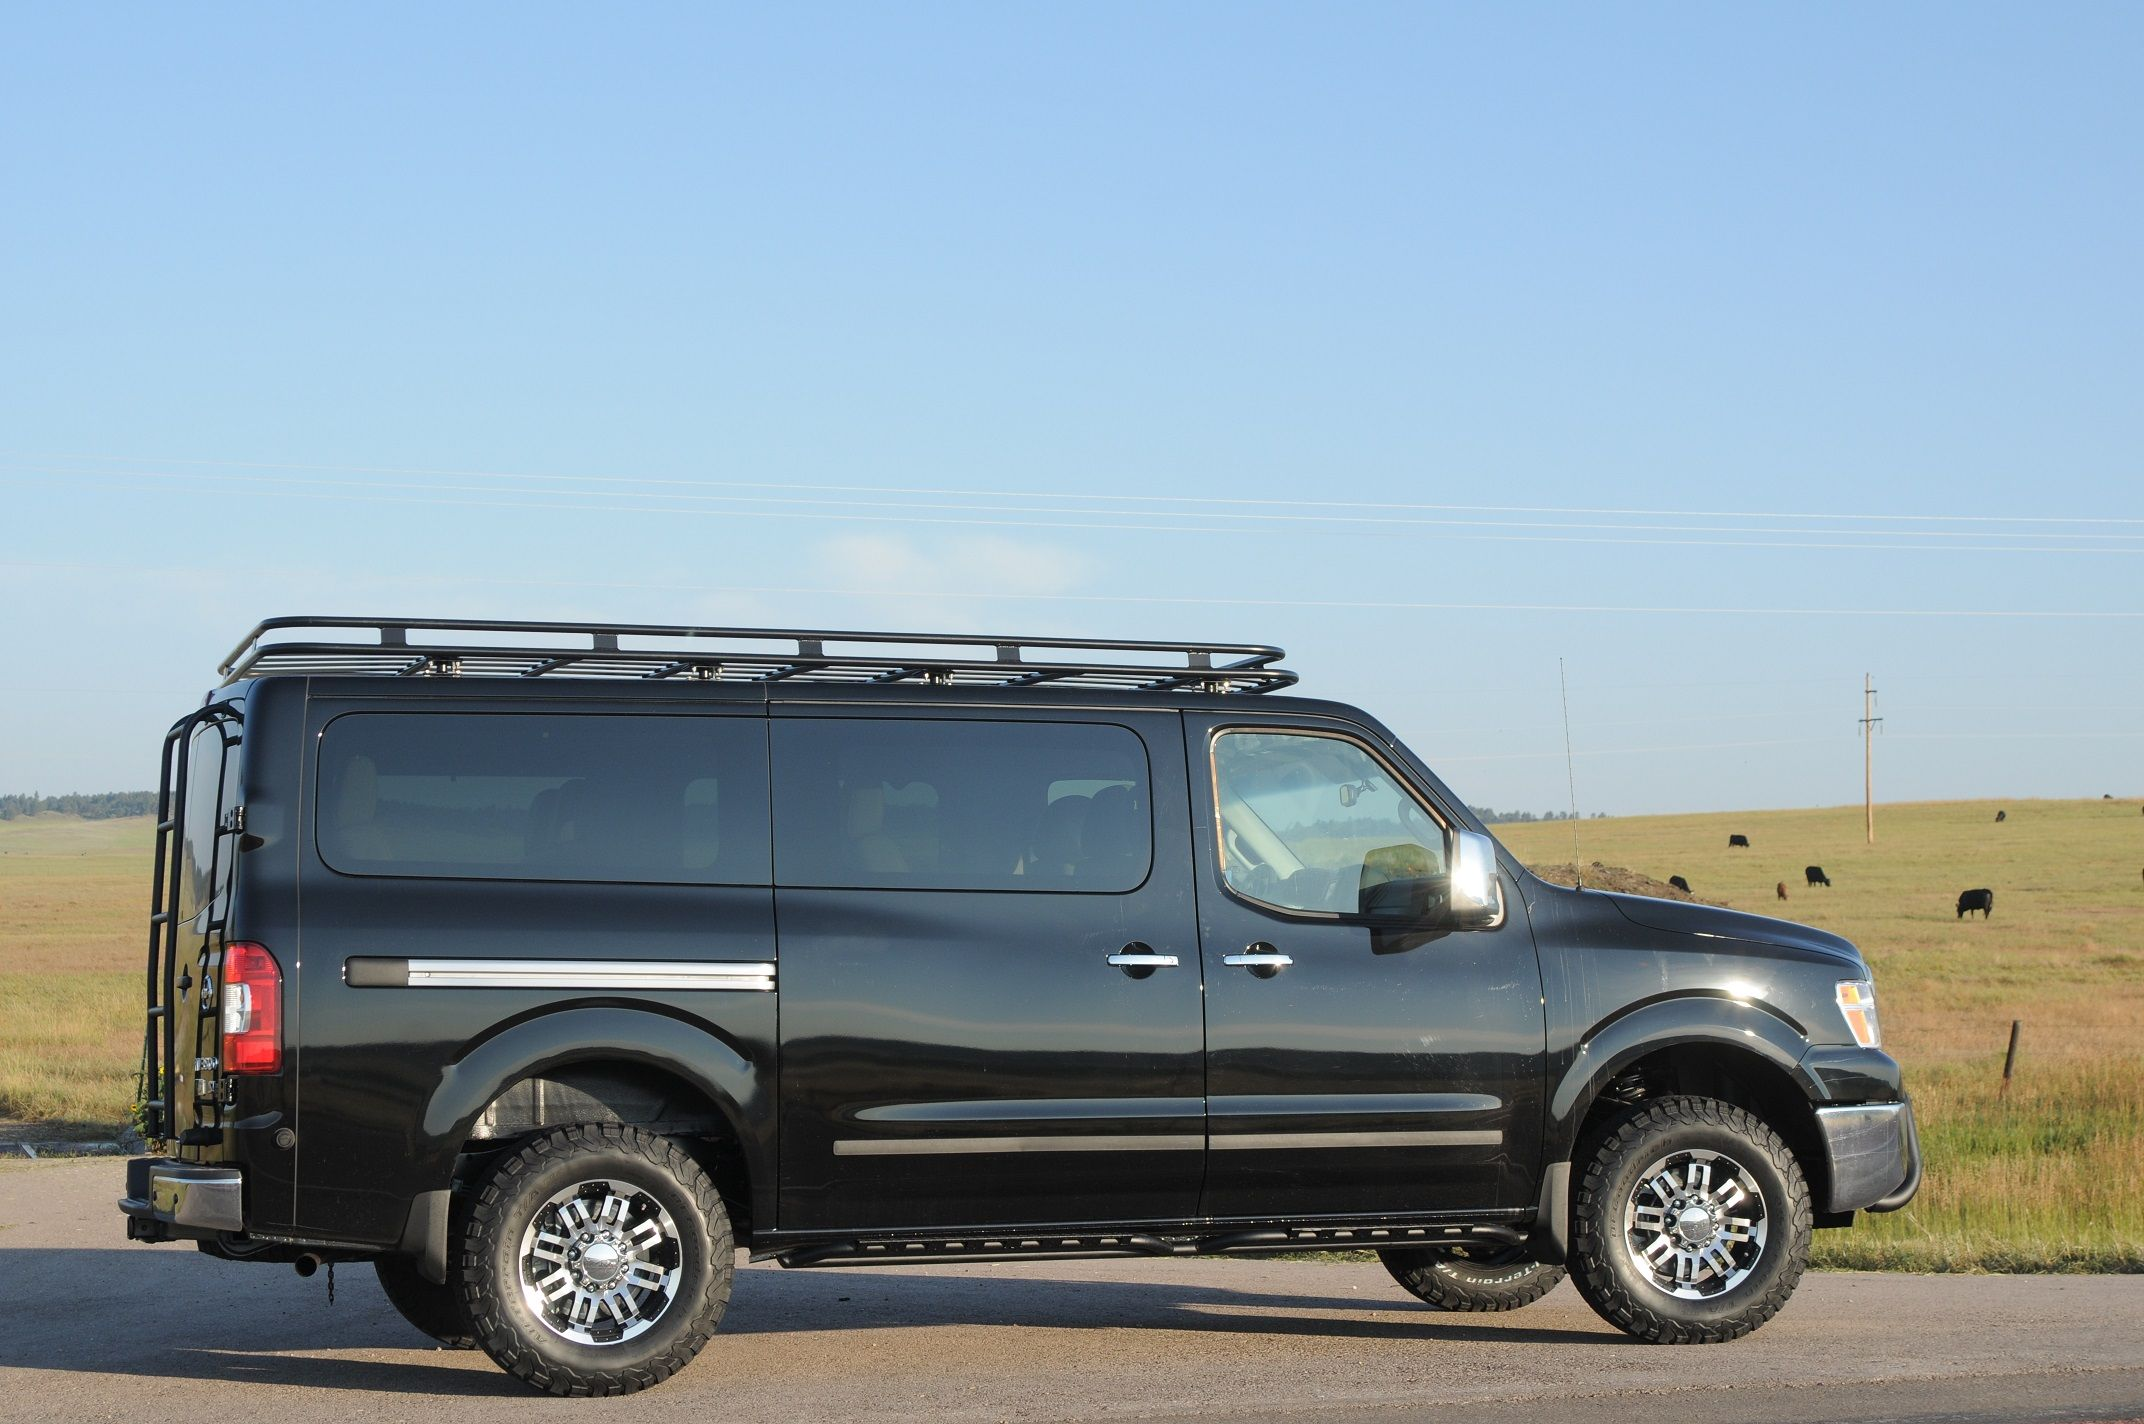 Nissan NV 3500, 4x4 installed by Advanced Four Wheel Drive systems